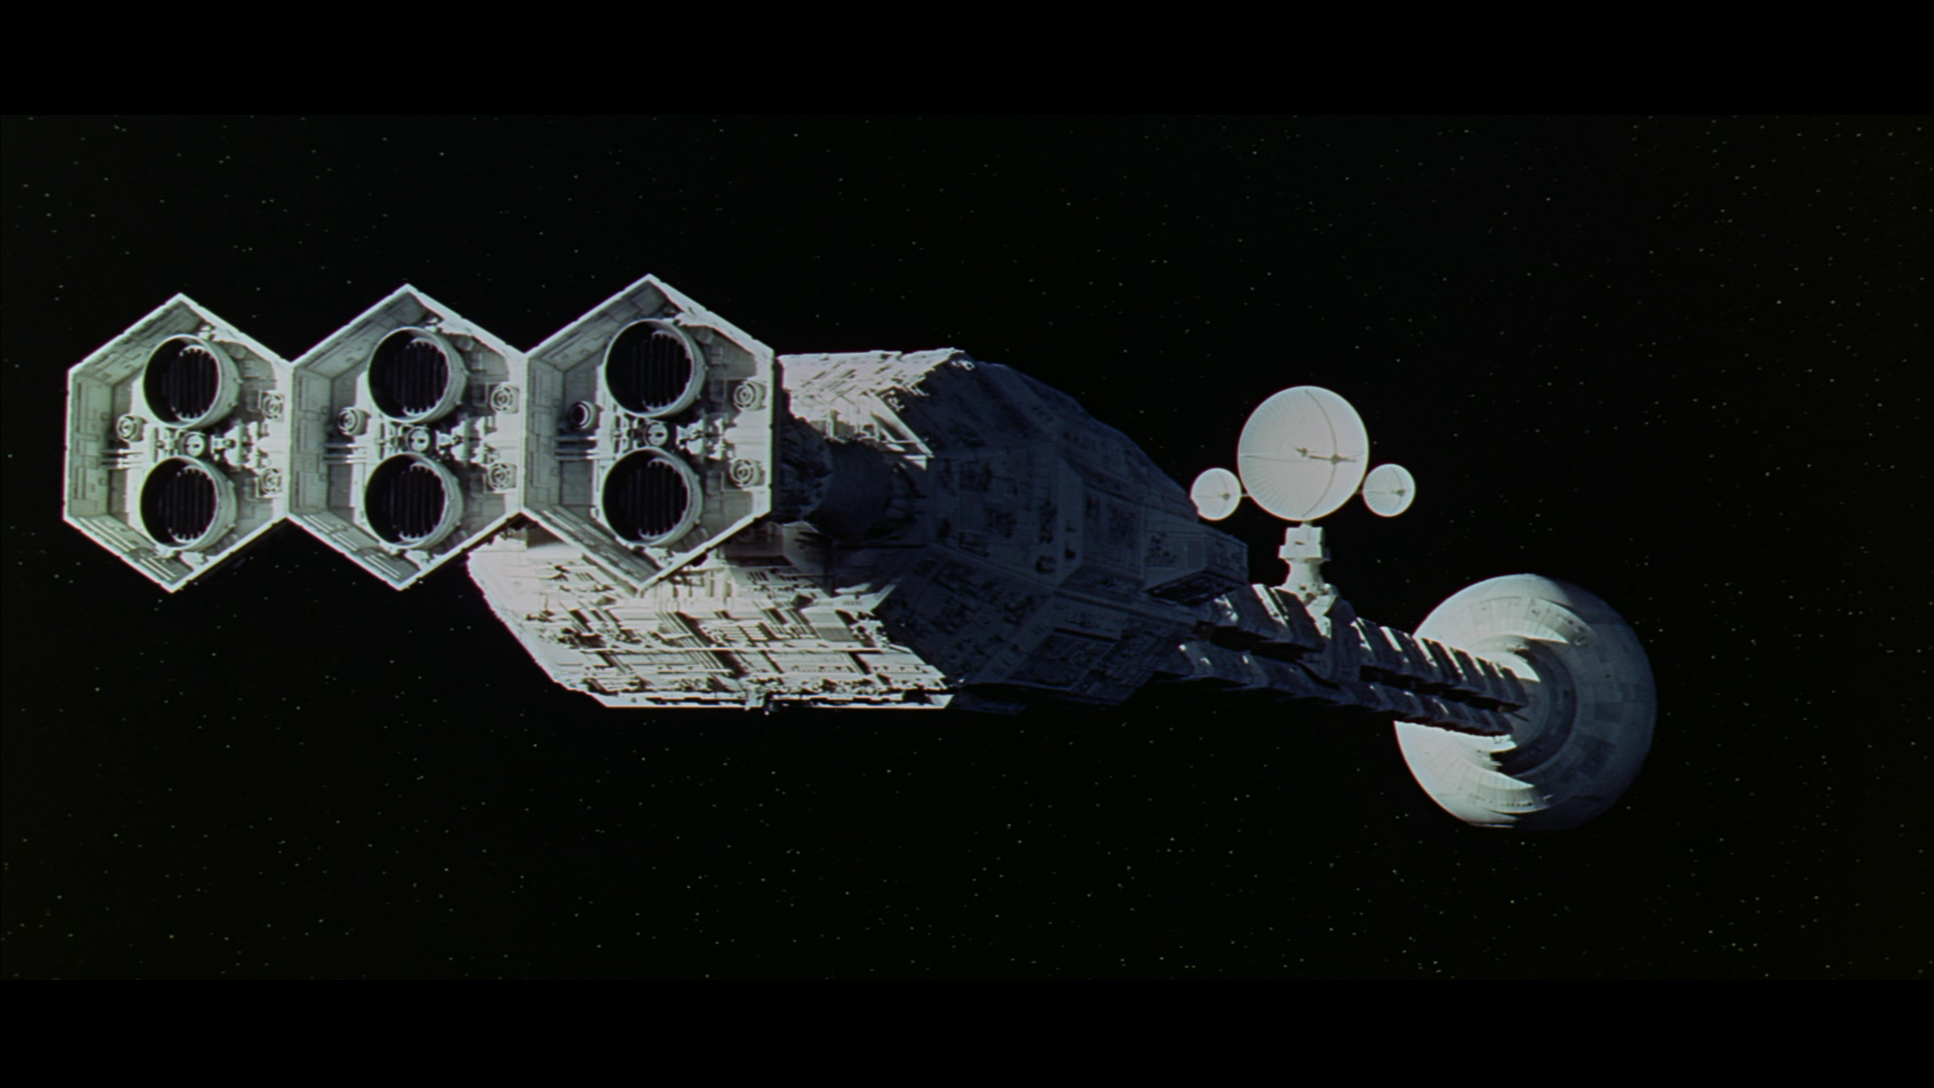 Kubrick 2001 The space odyssey explained